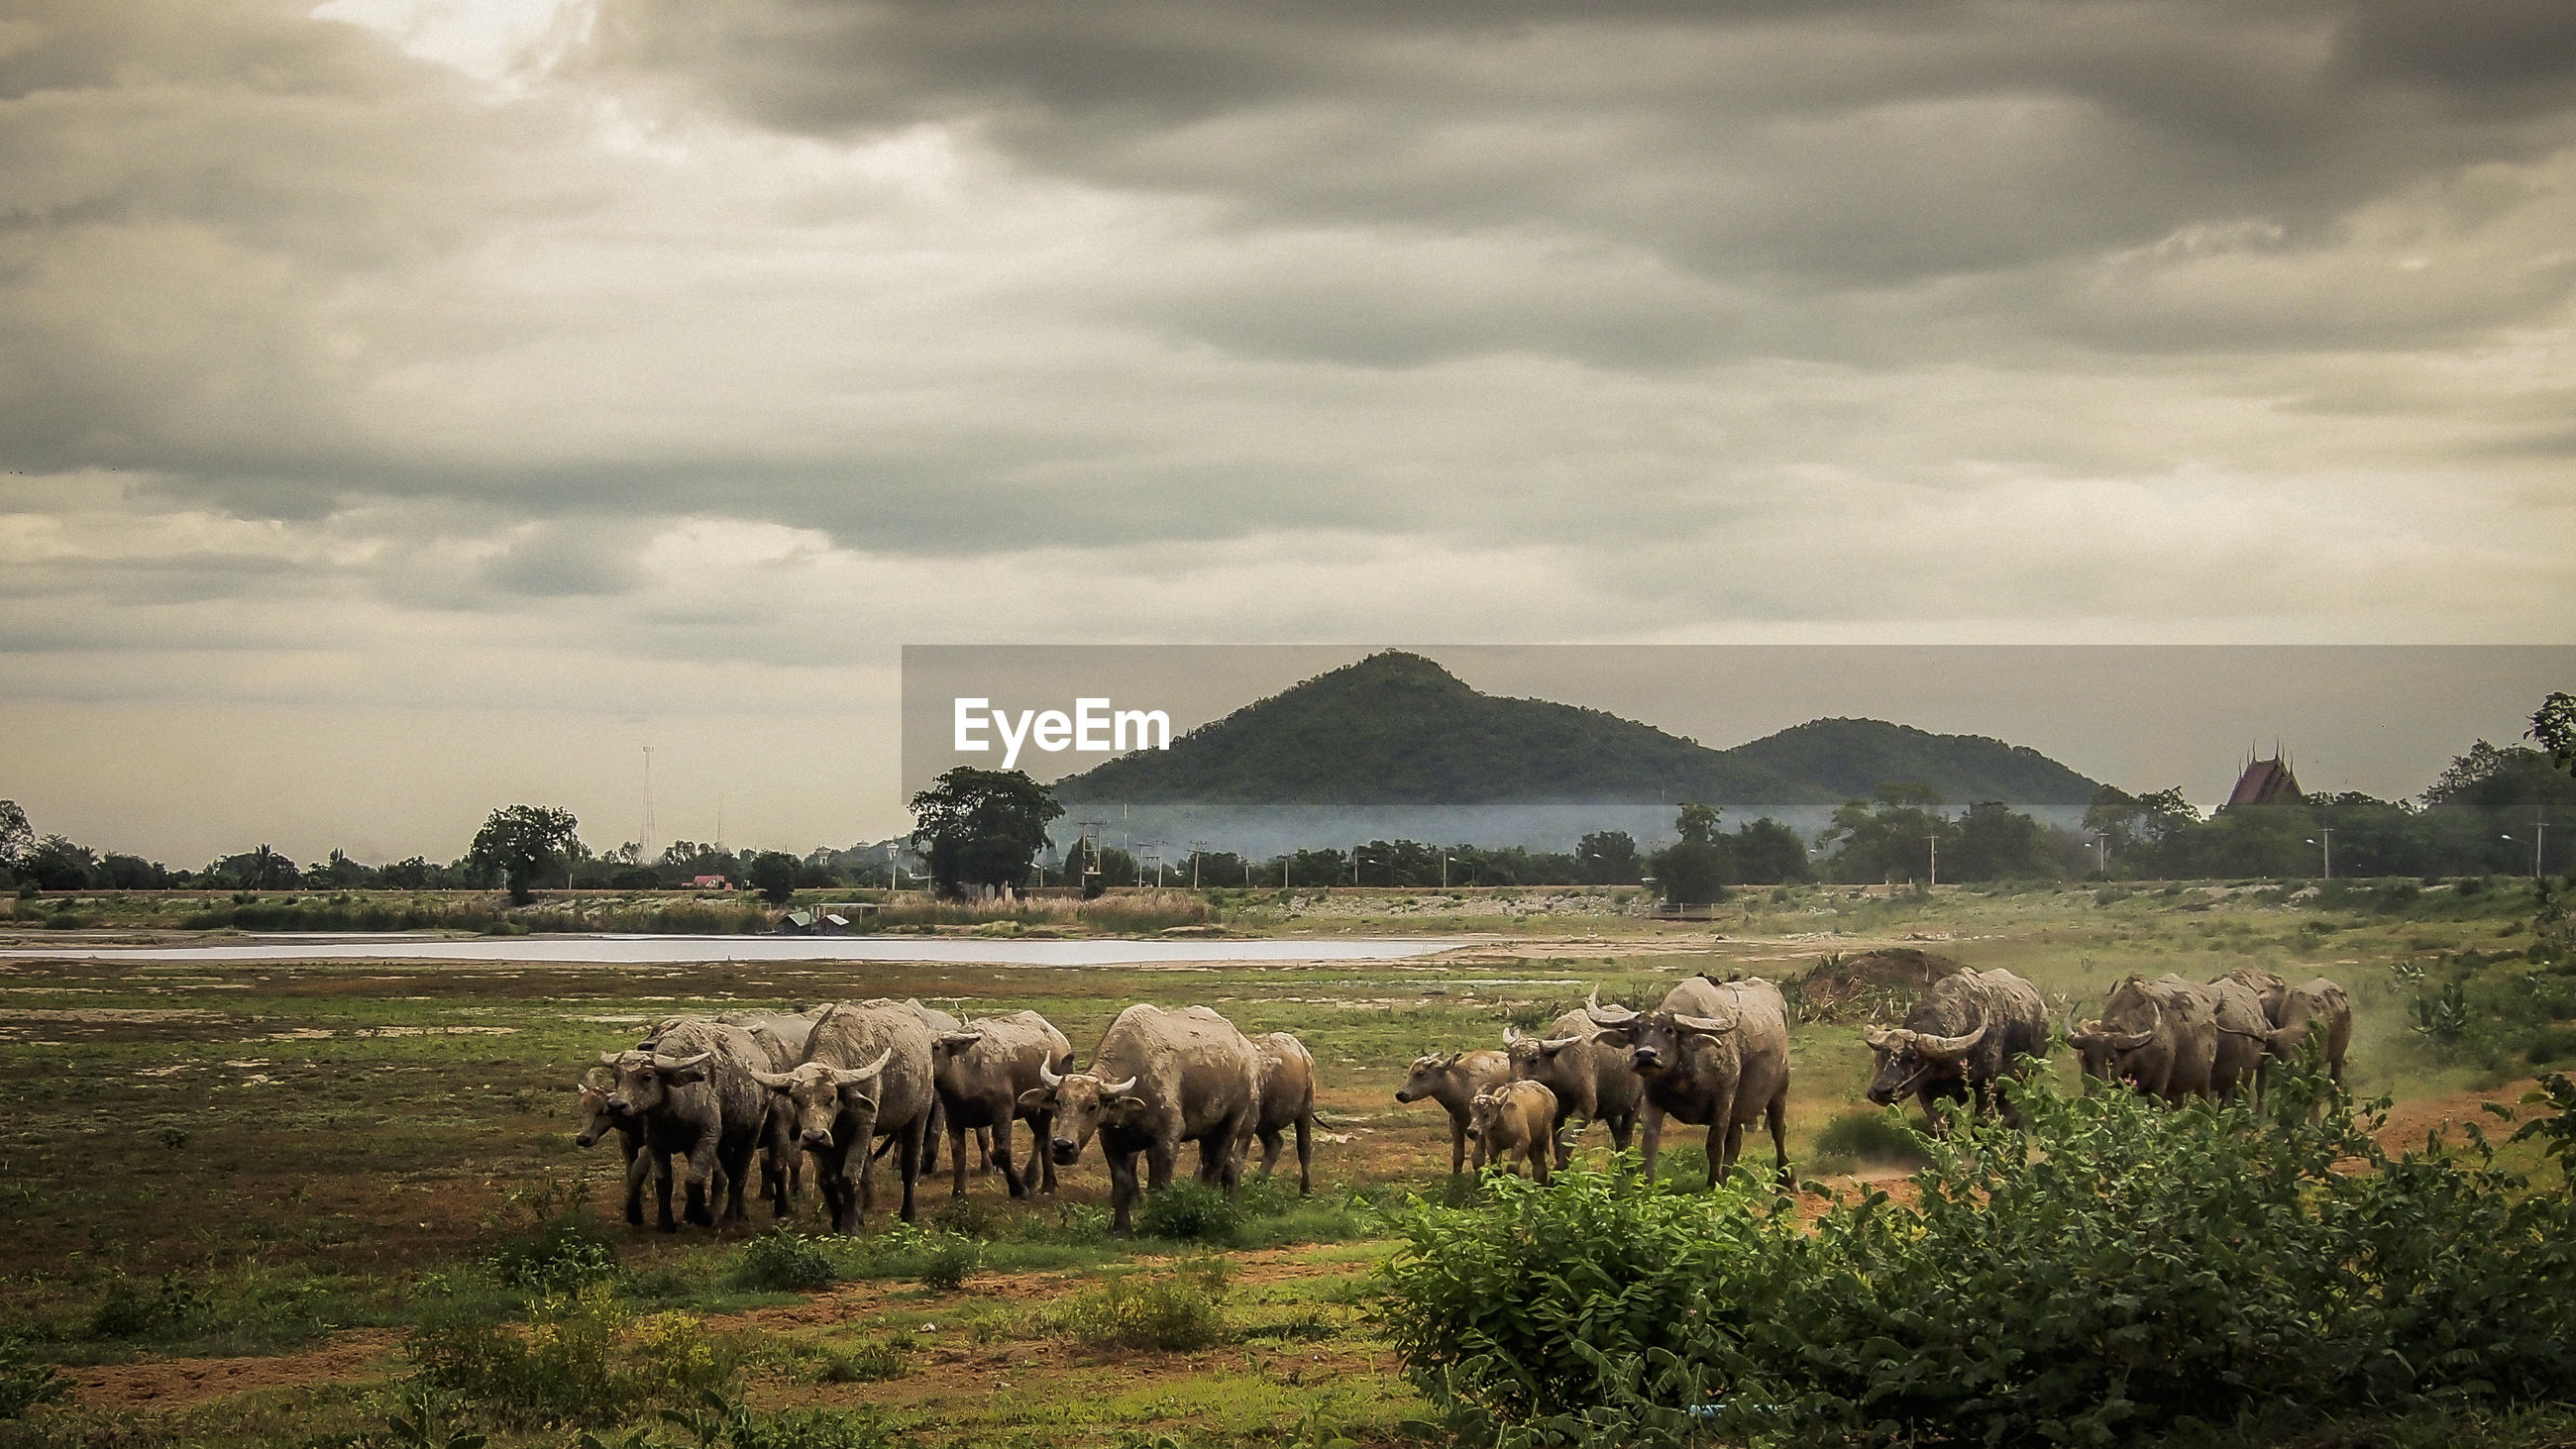 sky, landscape, field, grass, cloud - sky, grazing, tranquil scene, tranquility, nature, livestock, scenics, mammal, beauty in nature, mountain, cloudy, rural scene, cloud, day, non-urban scene, outdoors, no people, growth, herbivorous, remote, grassy, horizon over land, green color, idyllic, mountain range